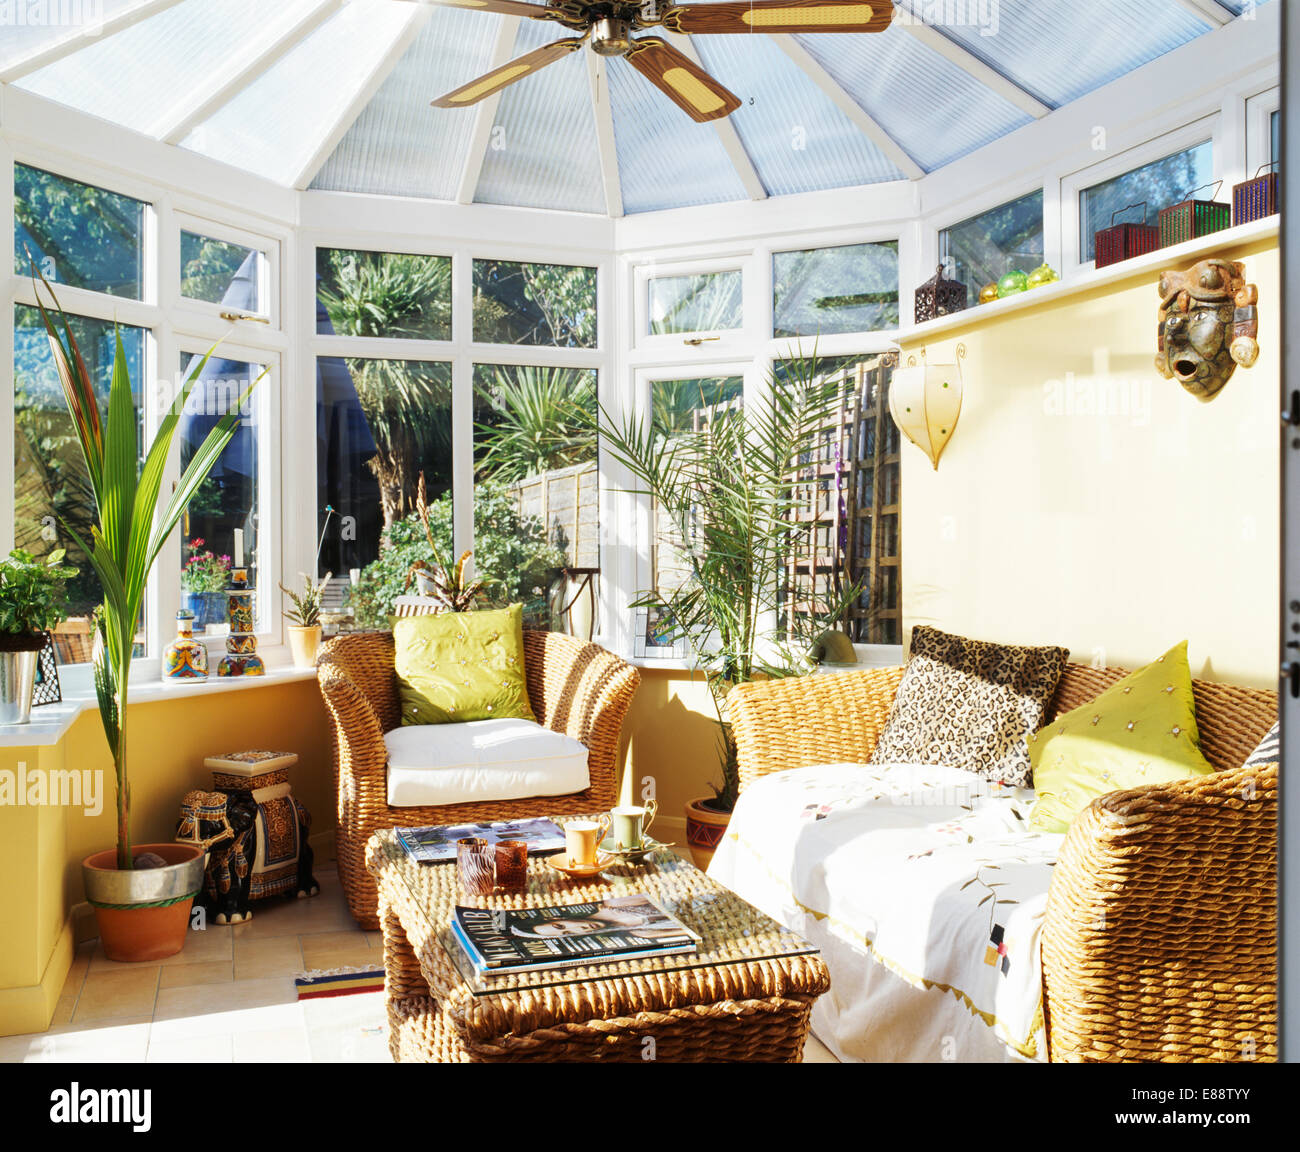 Lime Green Cushions On Wicker Sofa And Armchair In Conservatory Stock Photo Alamy